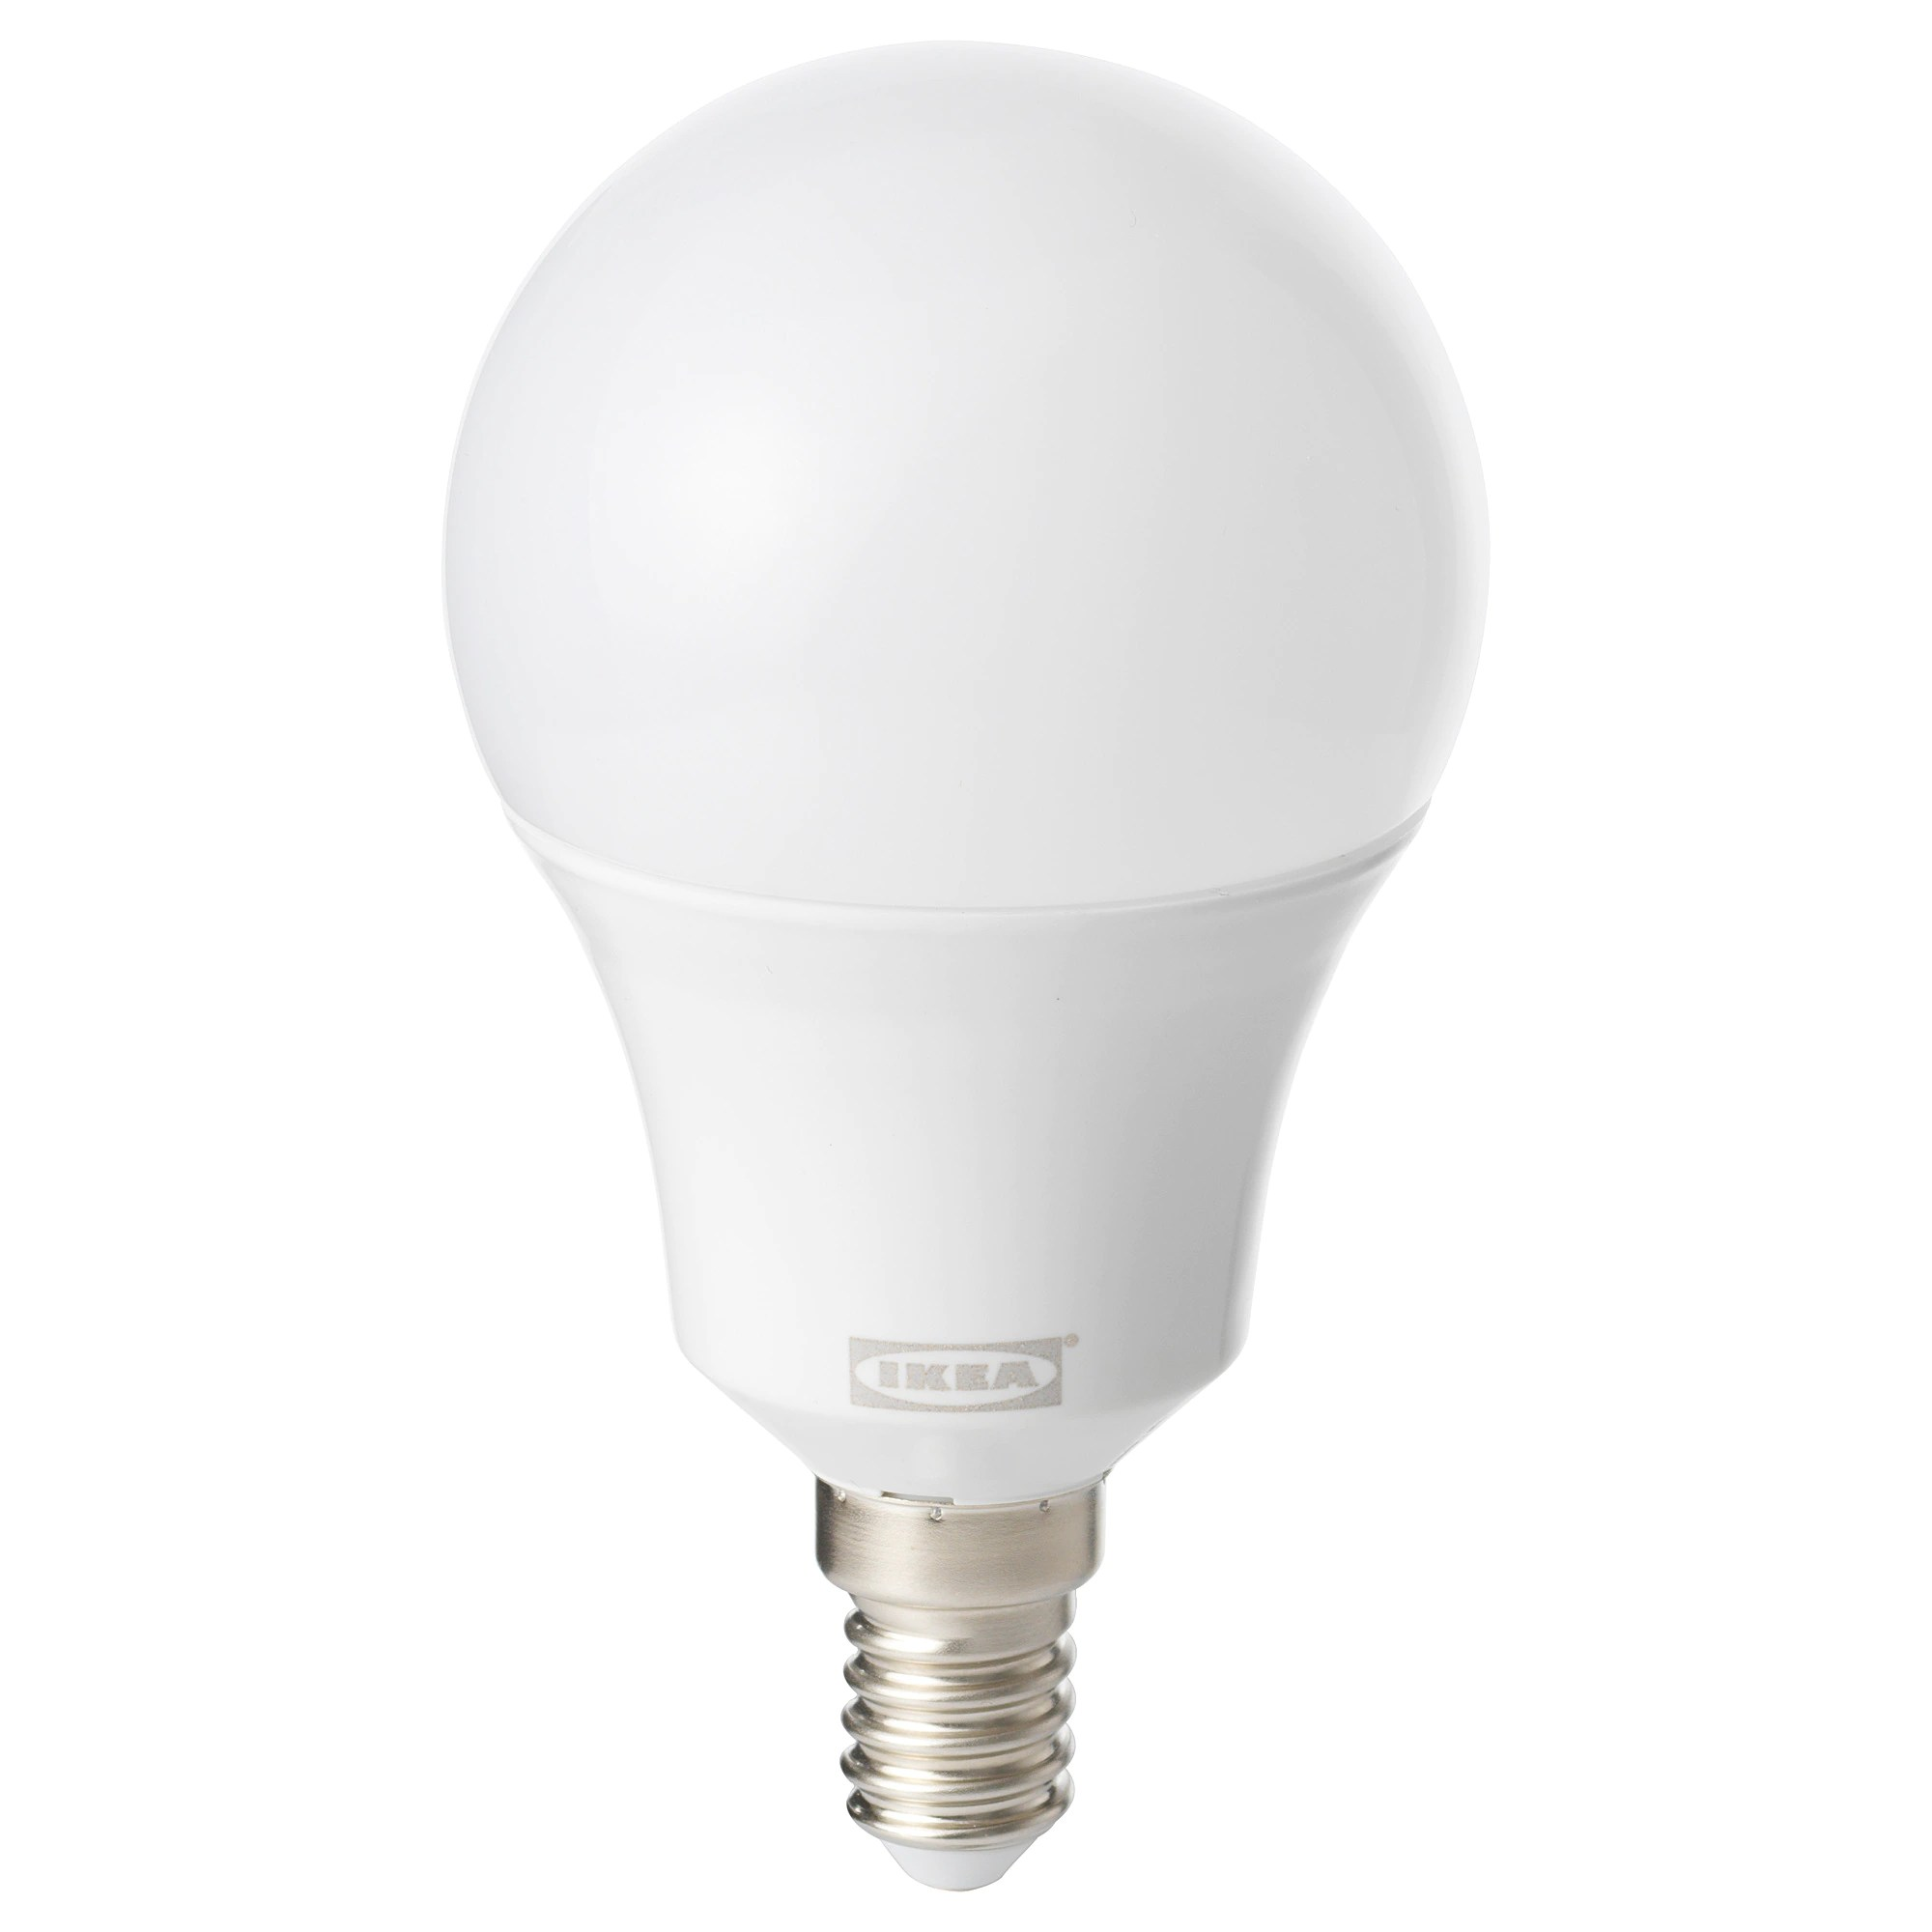 60 E14 Lumen Led Bulb E14 600 Lumen TrÅdfri Wireless Dimmable White Spectrum Opal White